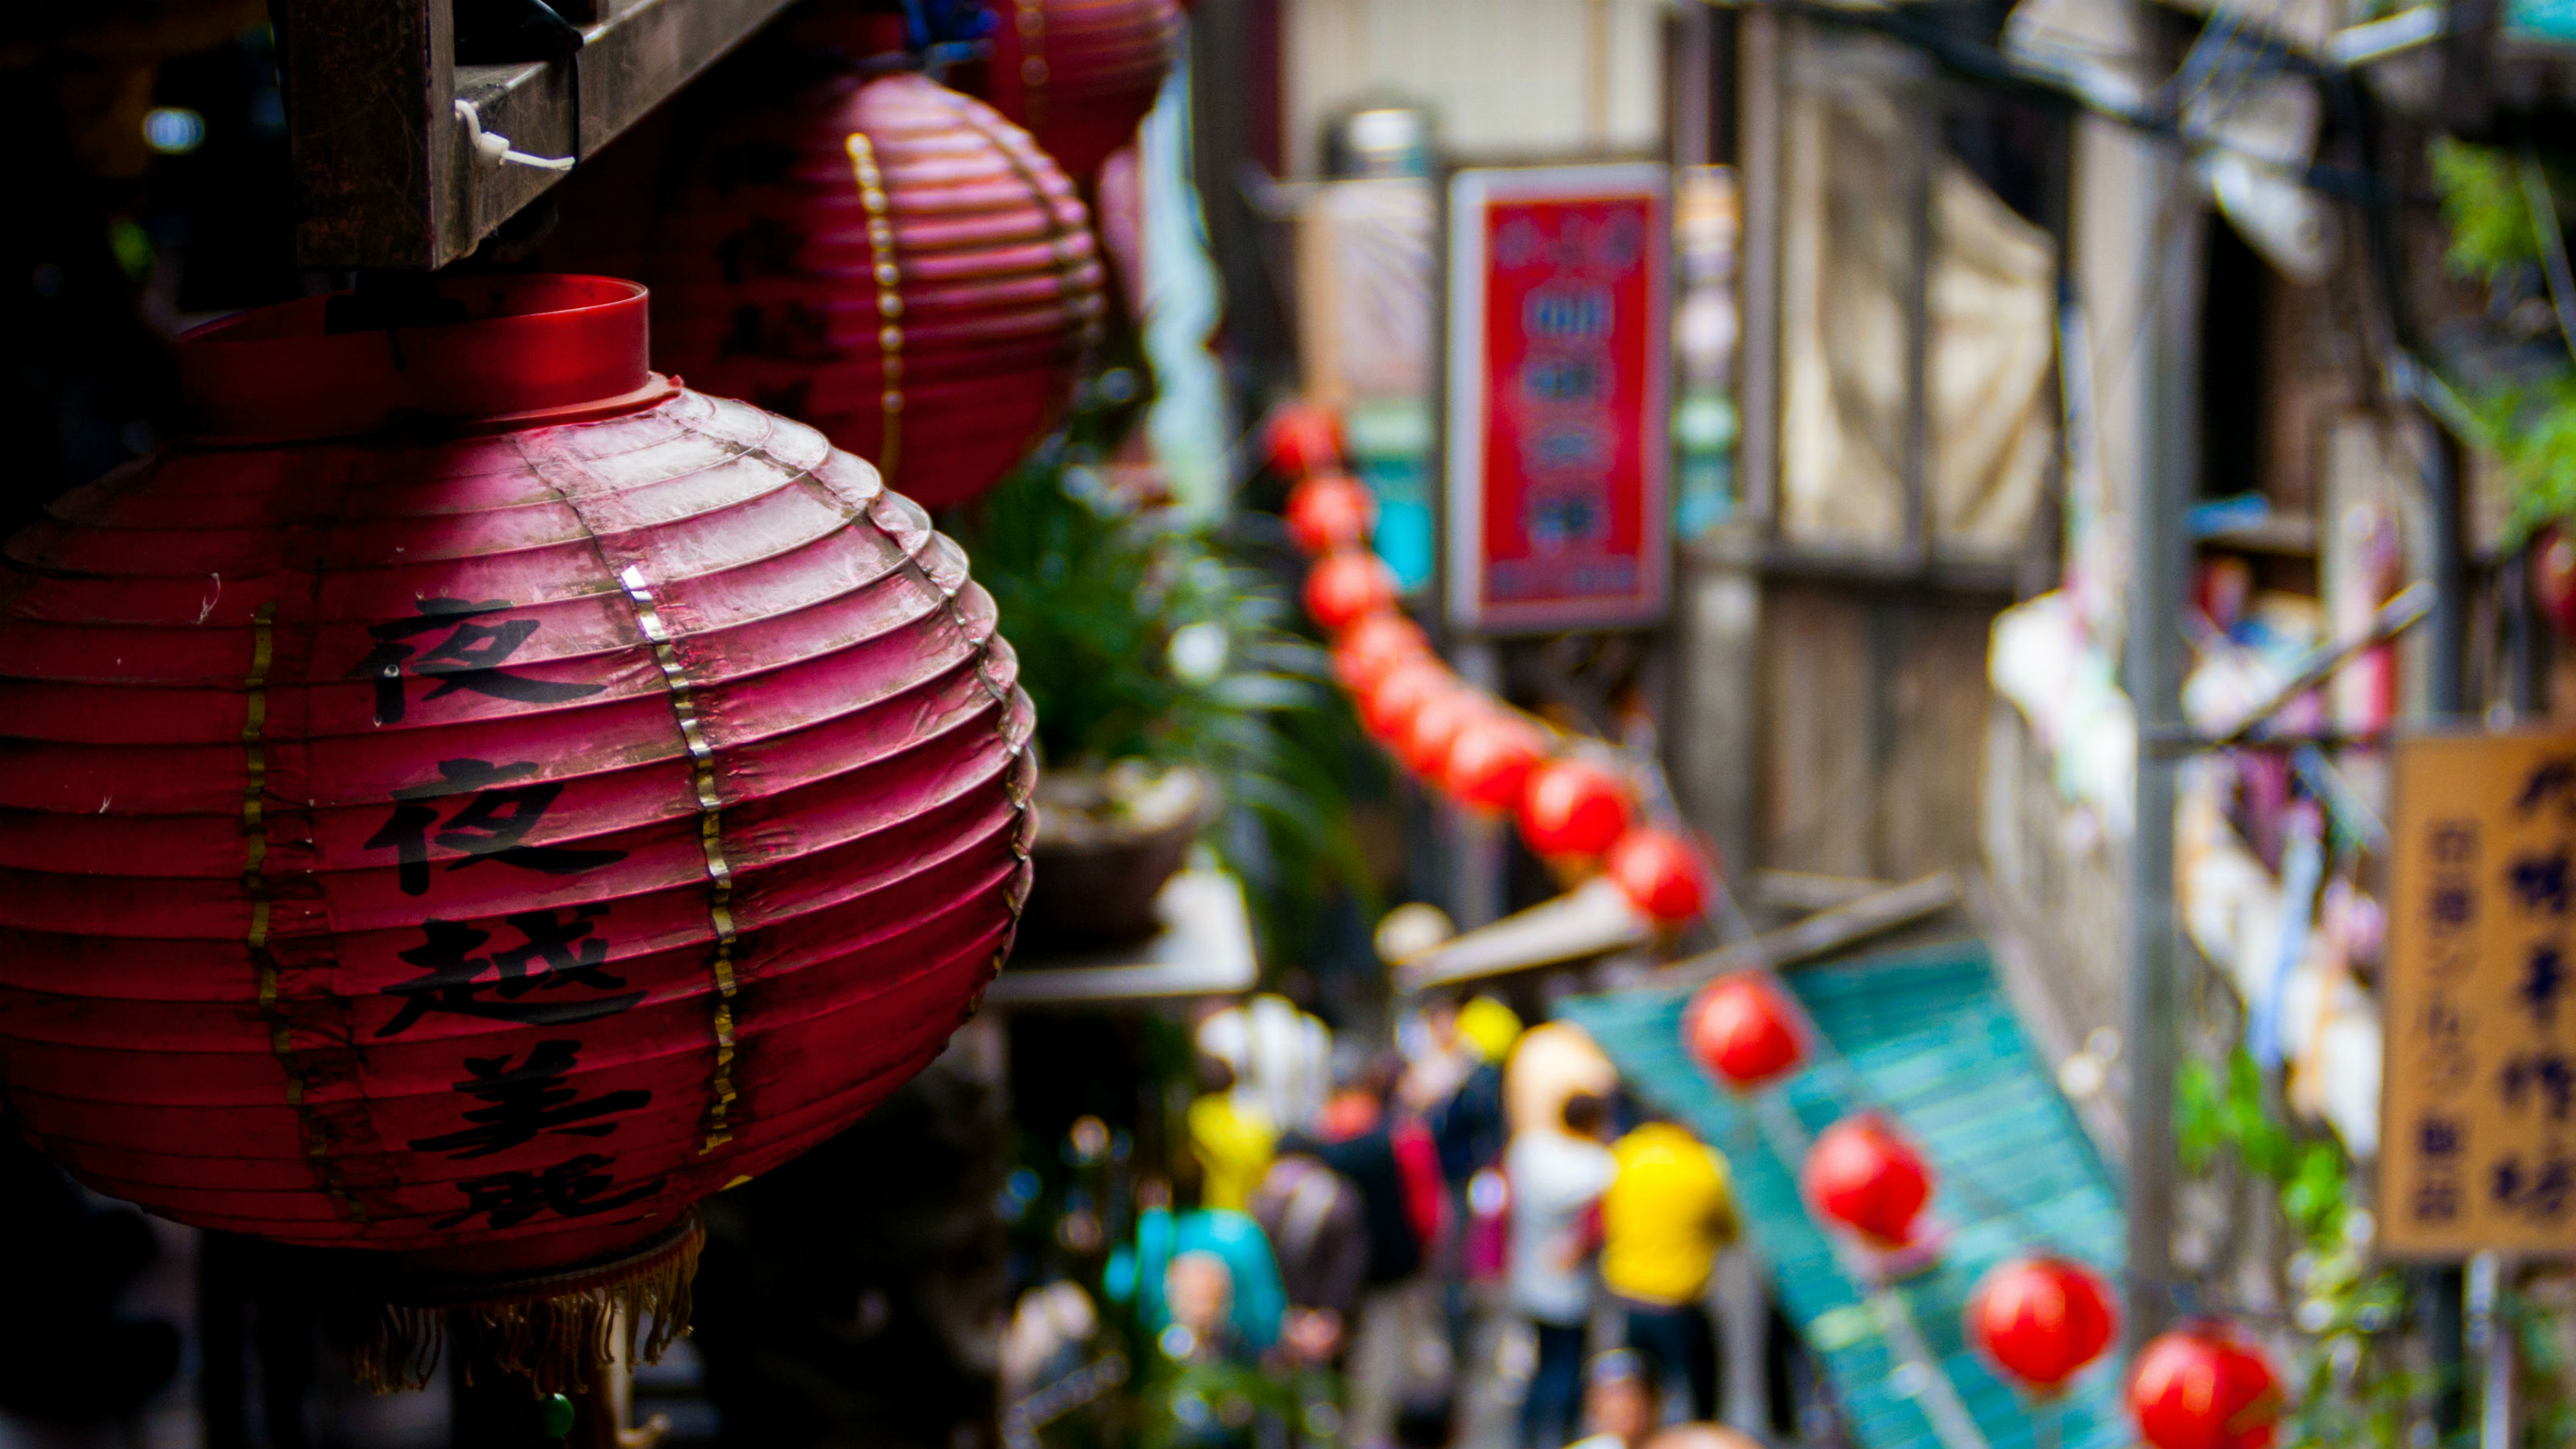 A Chinese street lined with red lanterns.